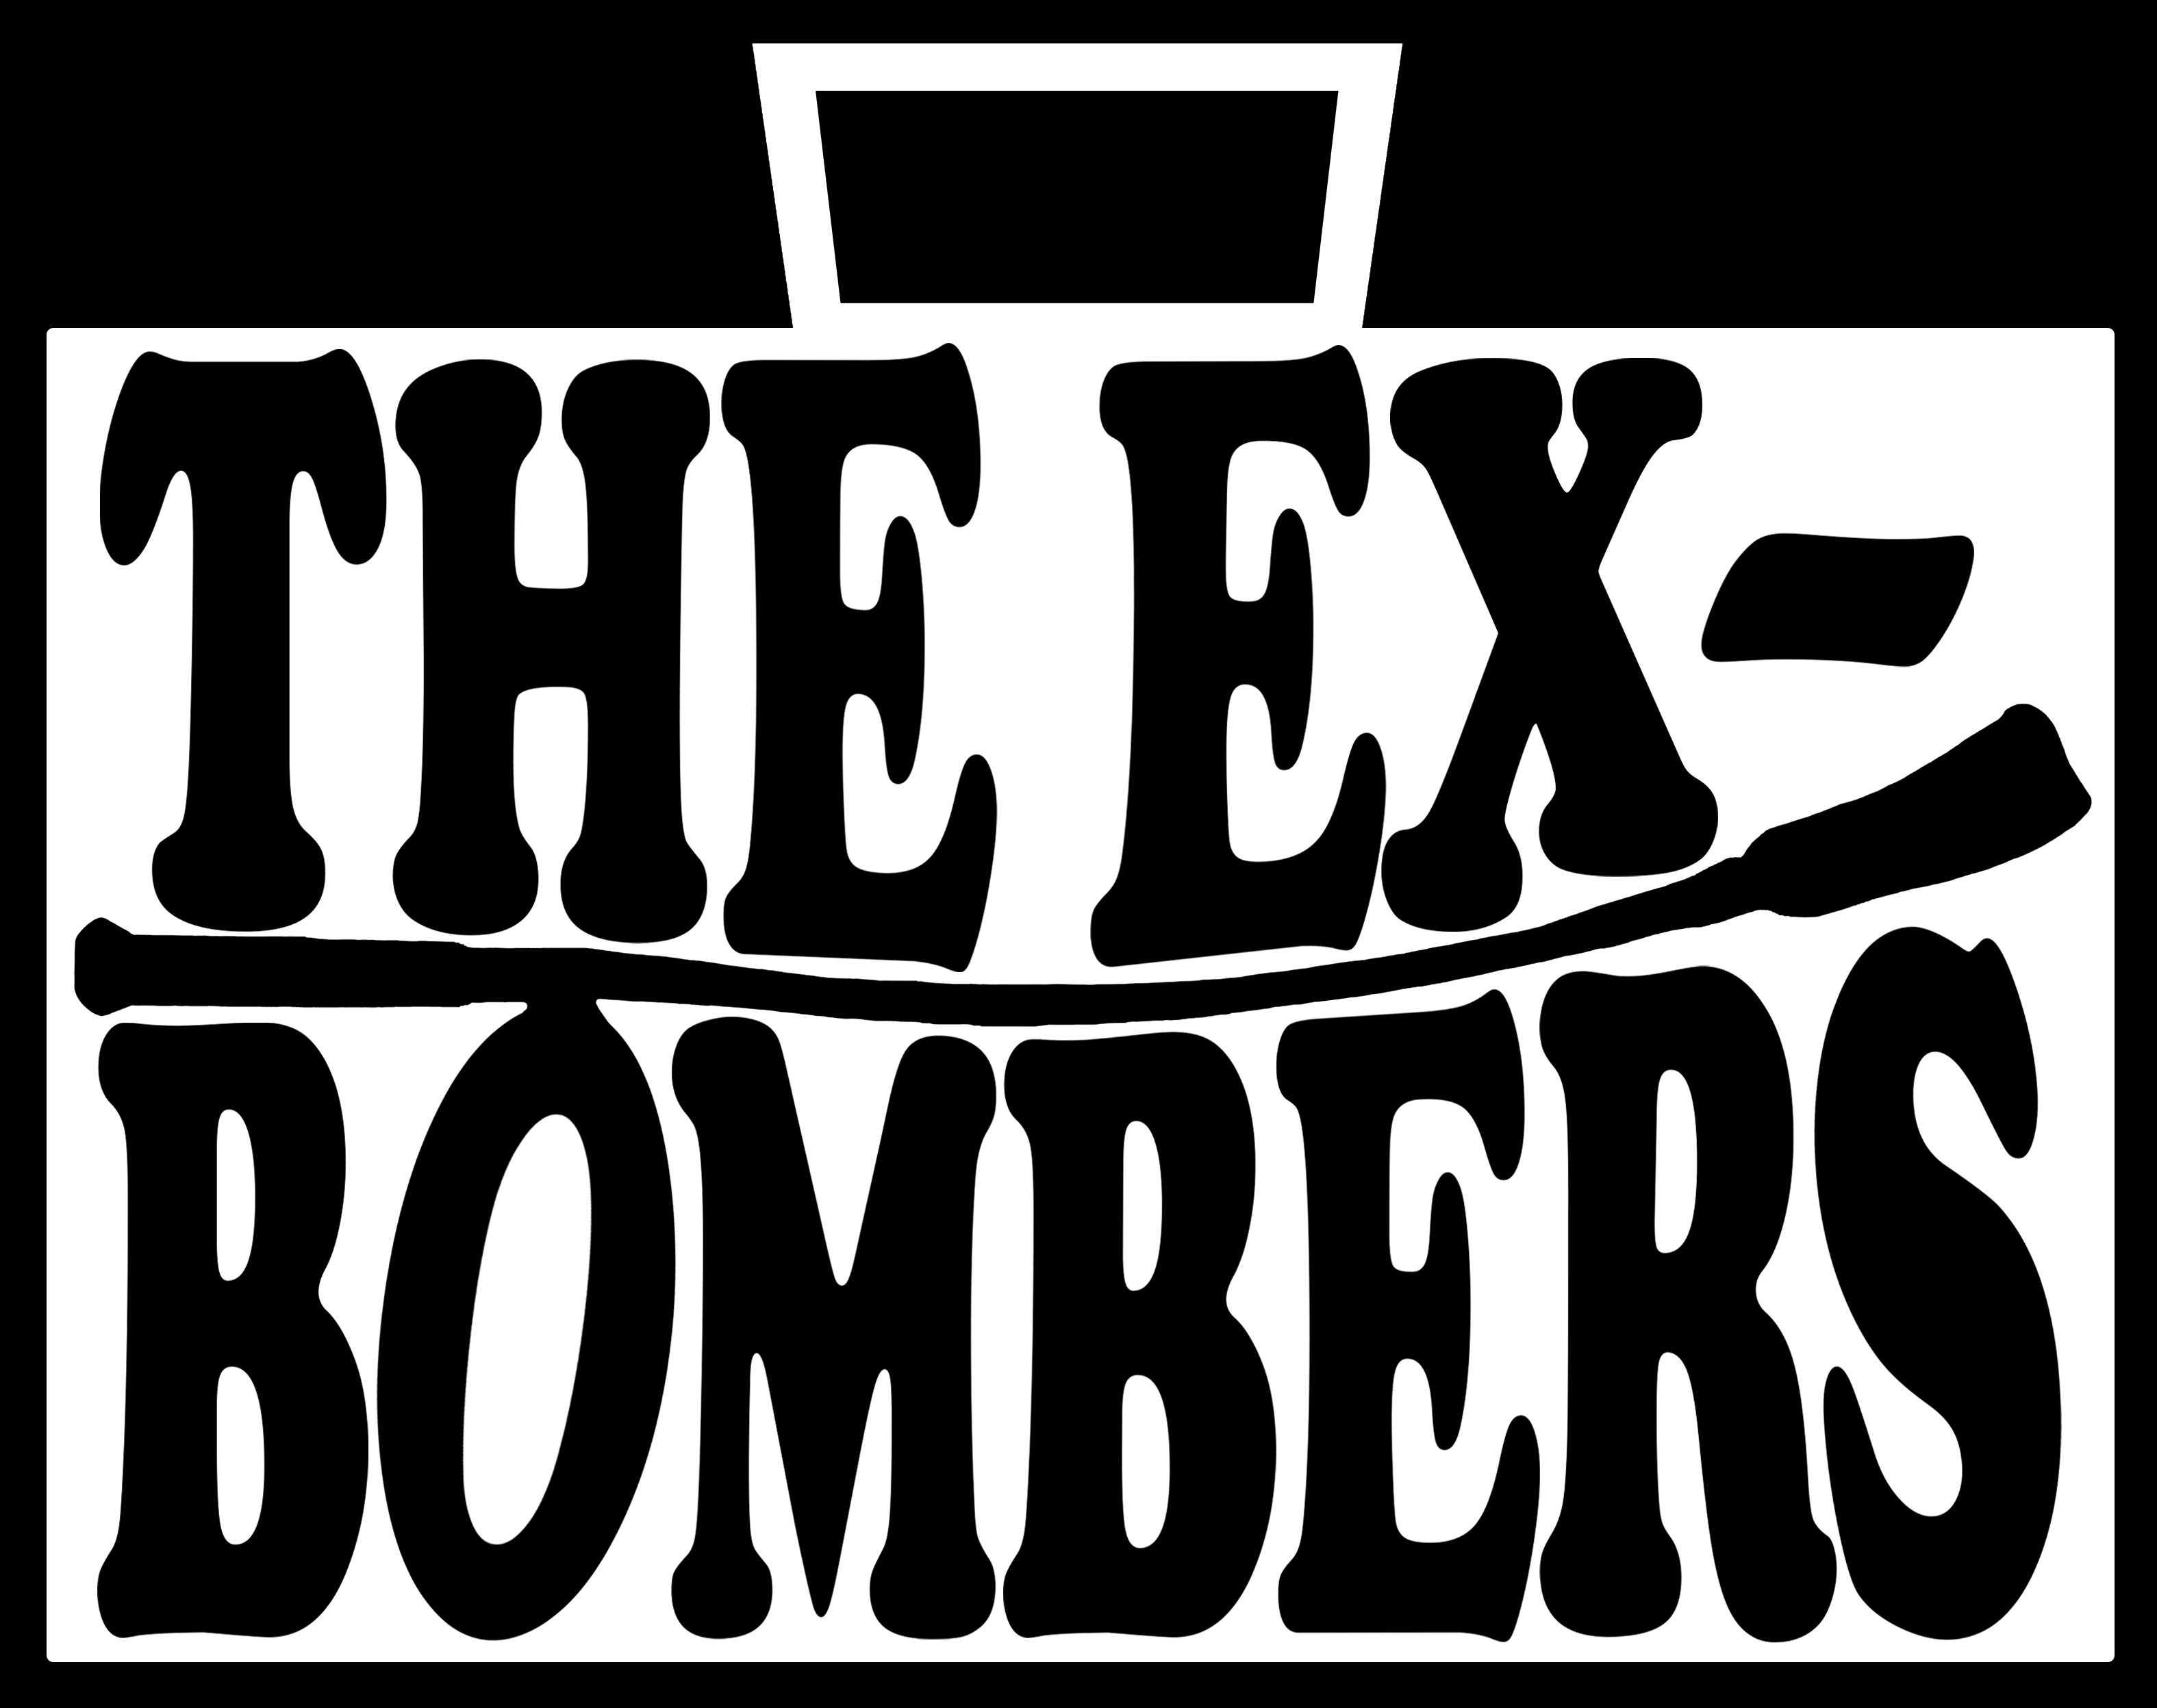 The Ex-Bombers electronic press kit and band profile on